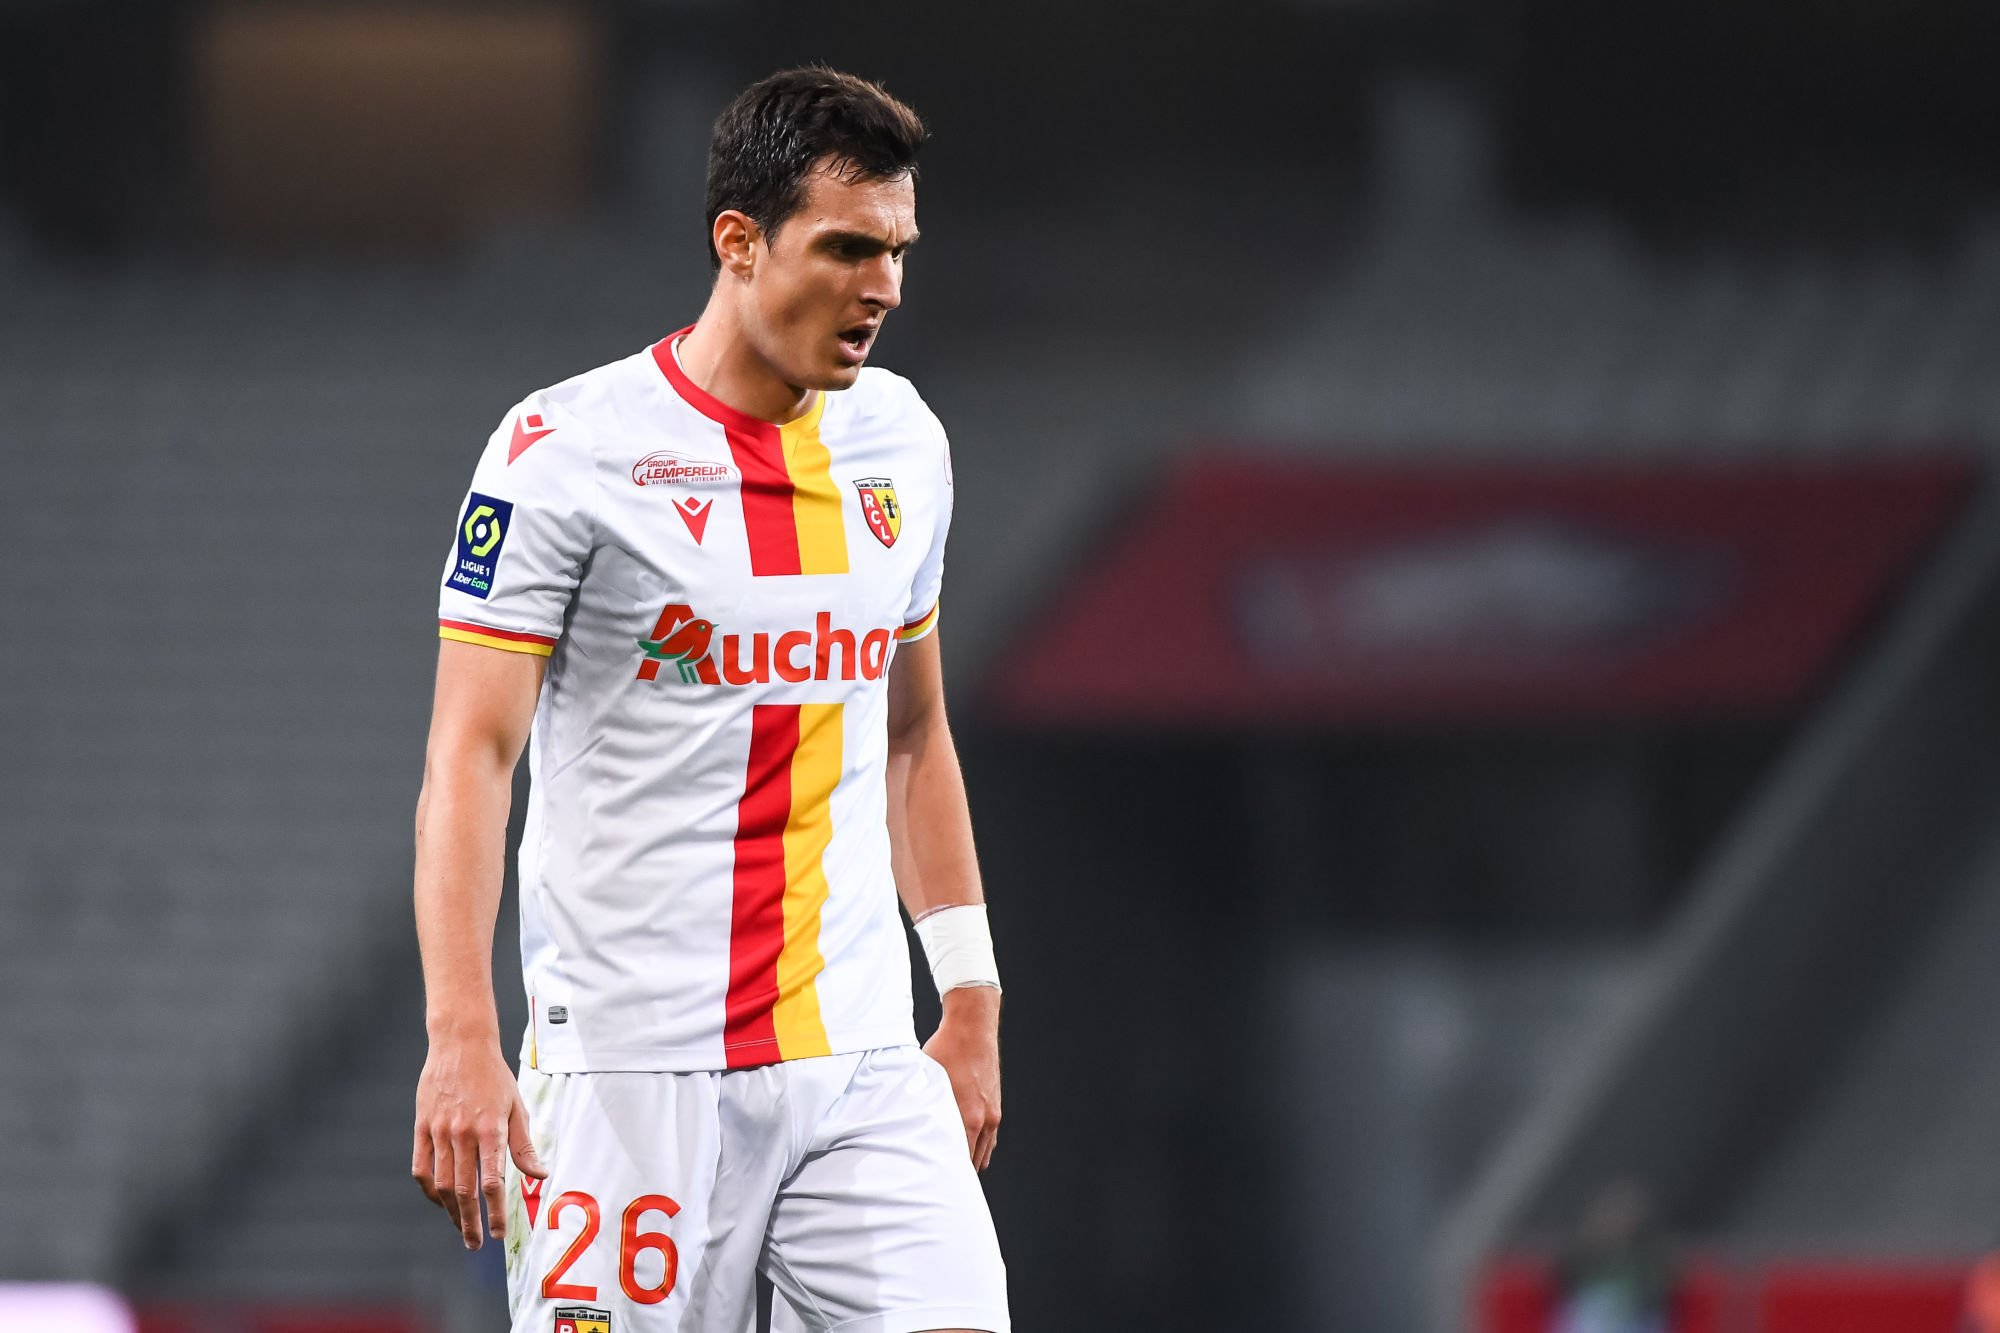 RC Lens - Mercato : Radovanovic file en Belgique (officiel)